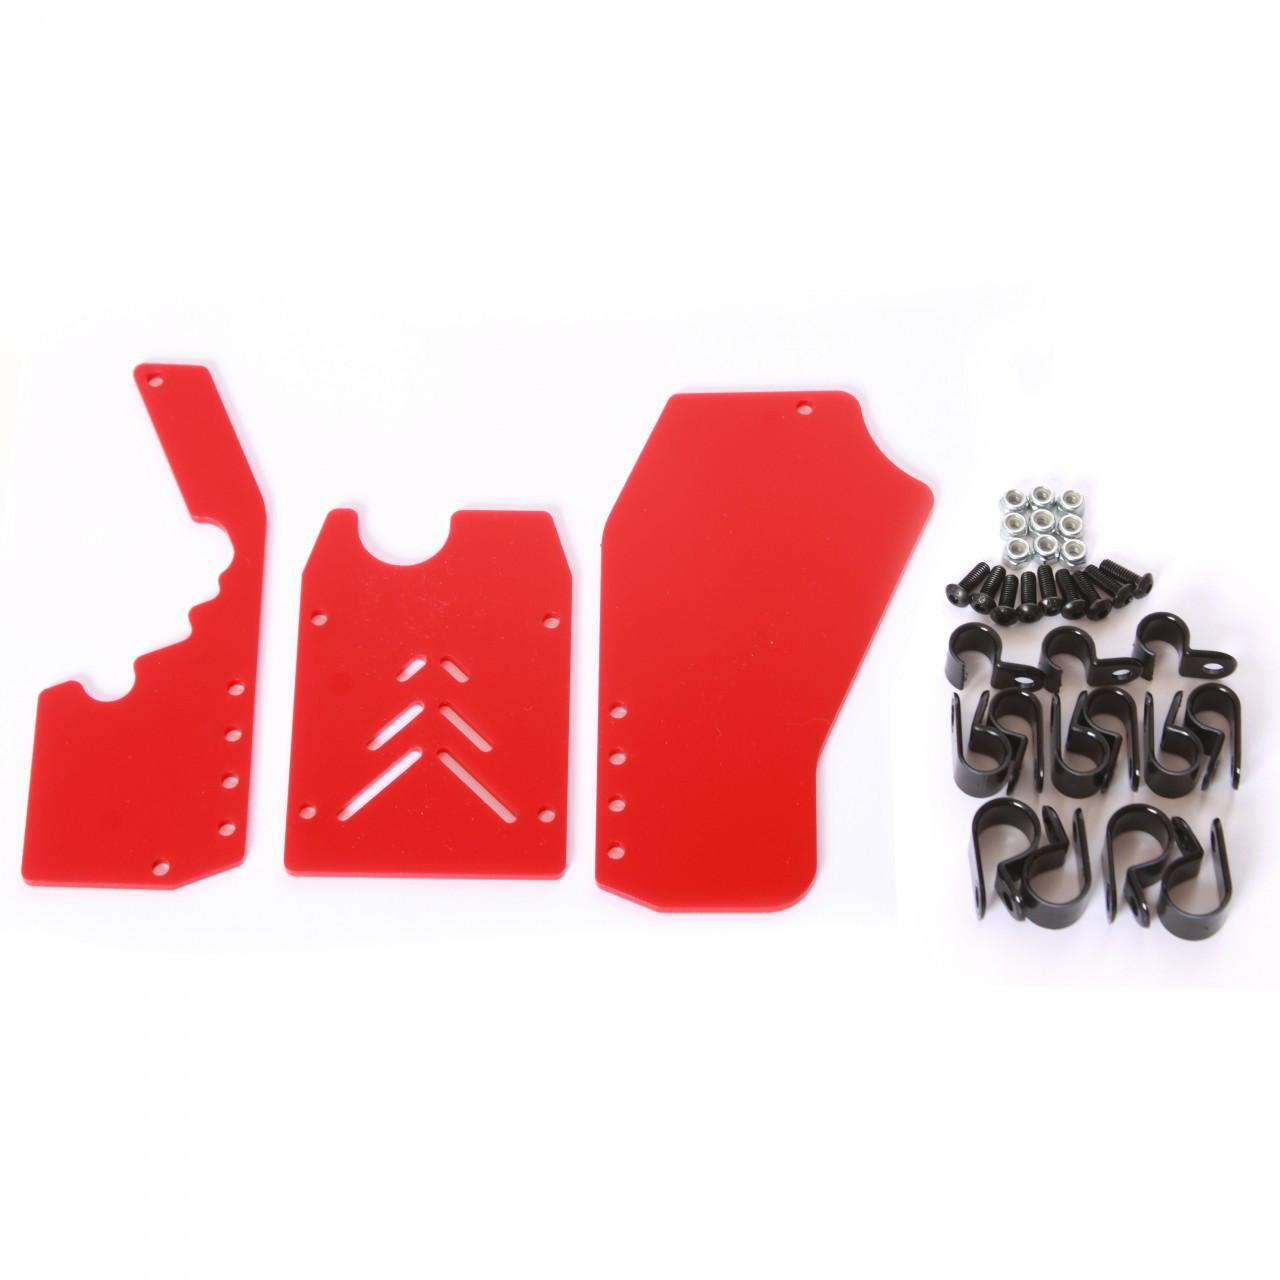 HPI Baja 3 piece rear window kit with hardware - Solid Red.